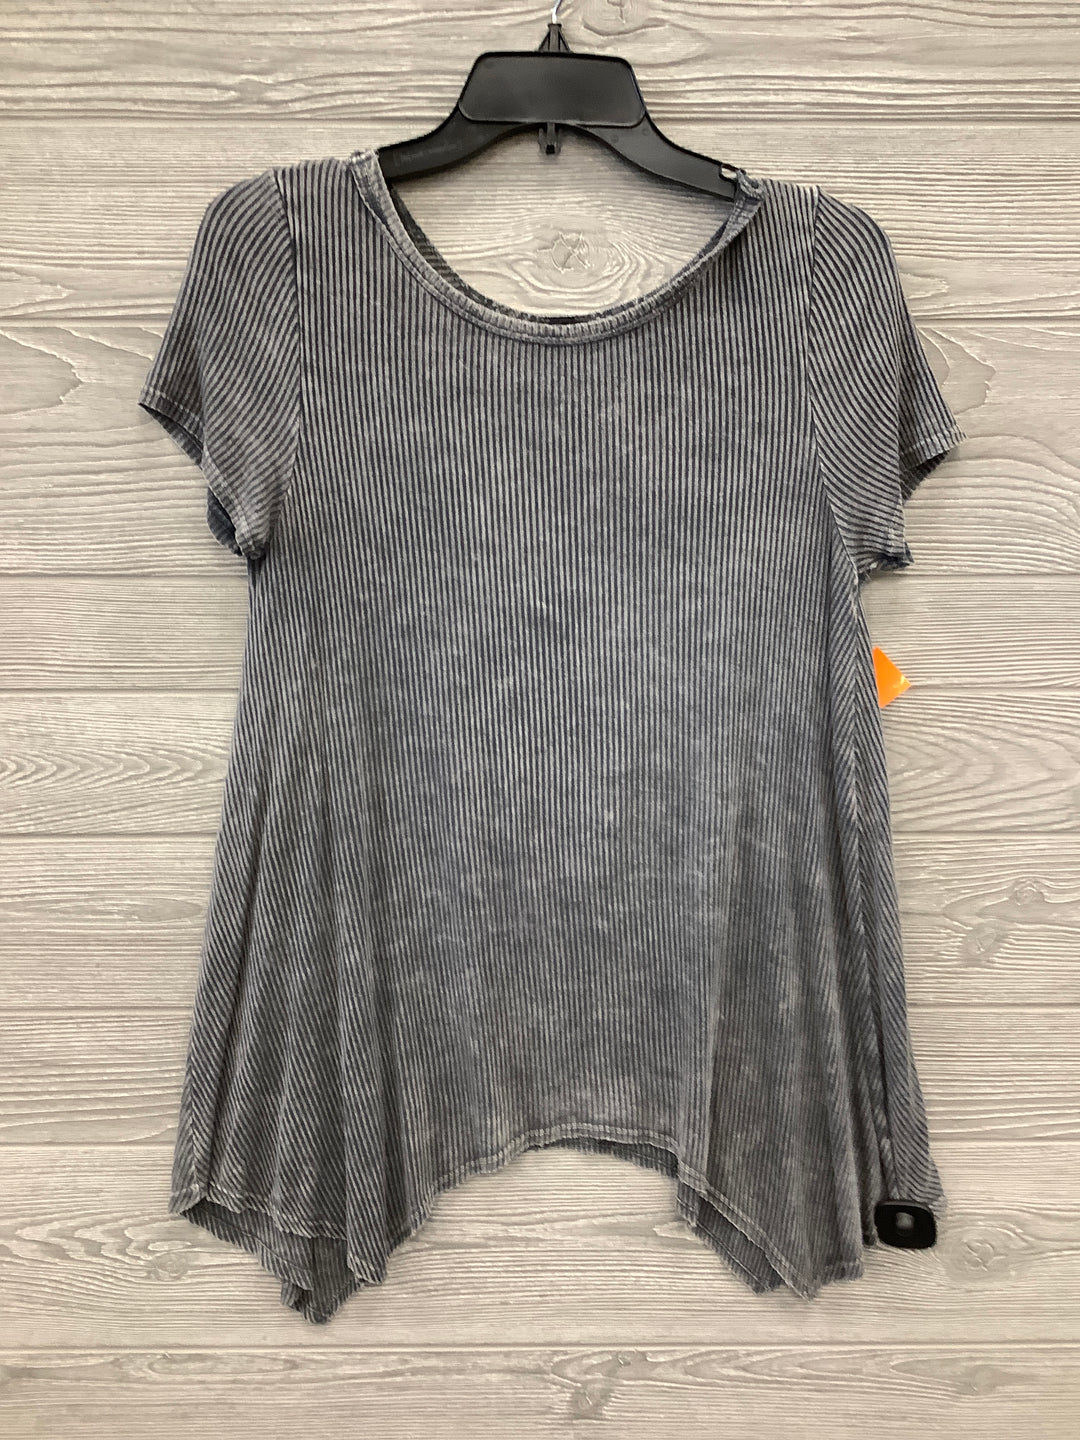 Primary Photo - BRAND: CMD <BR>STYLE: SHORT SLEEVE <BR>COLOR: CHARCOAL <BR>SIZE: M <BR>SKU: 40322081205U